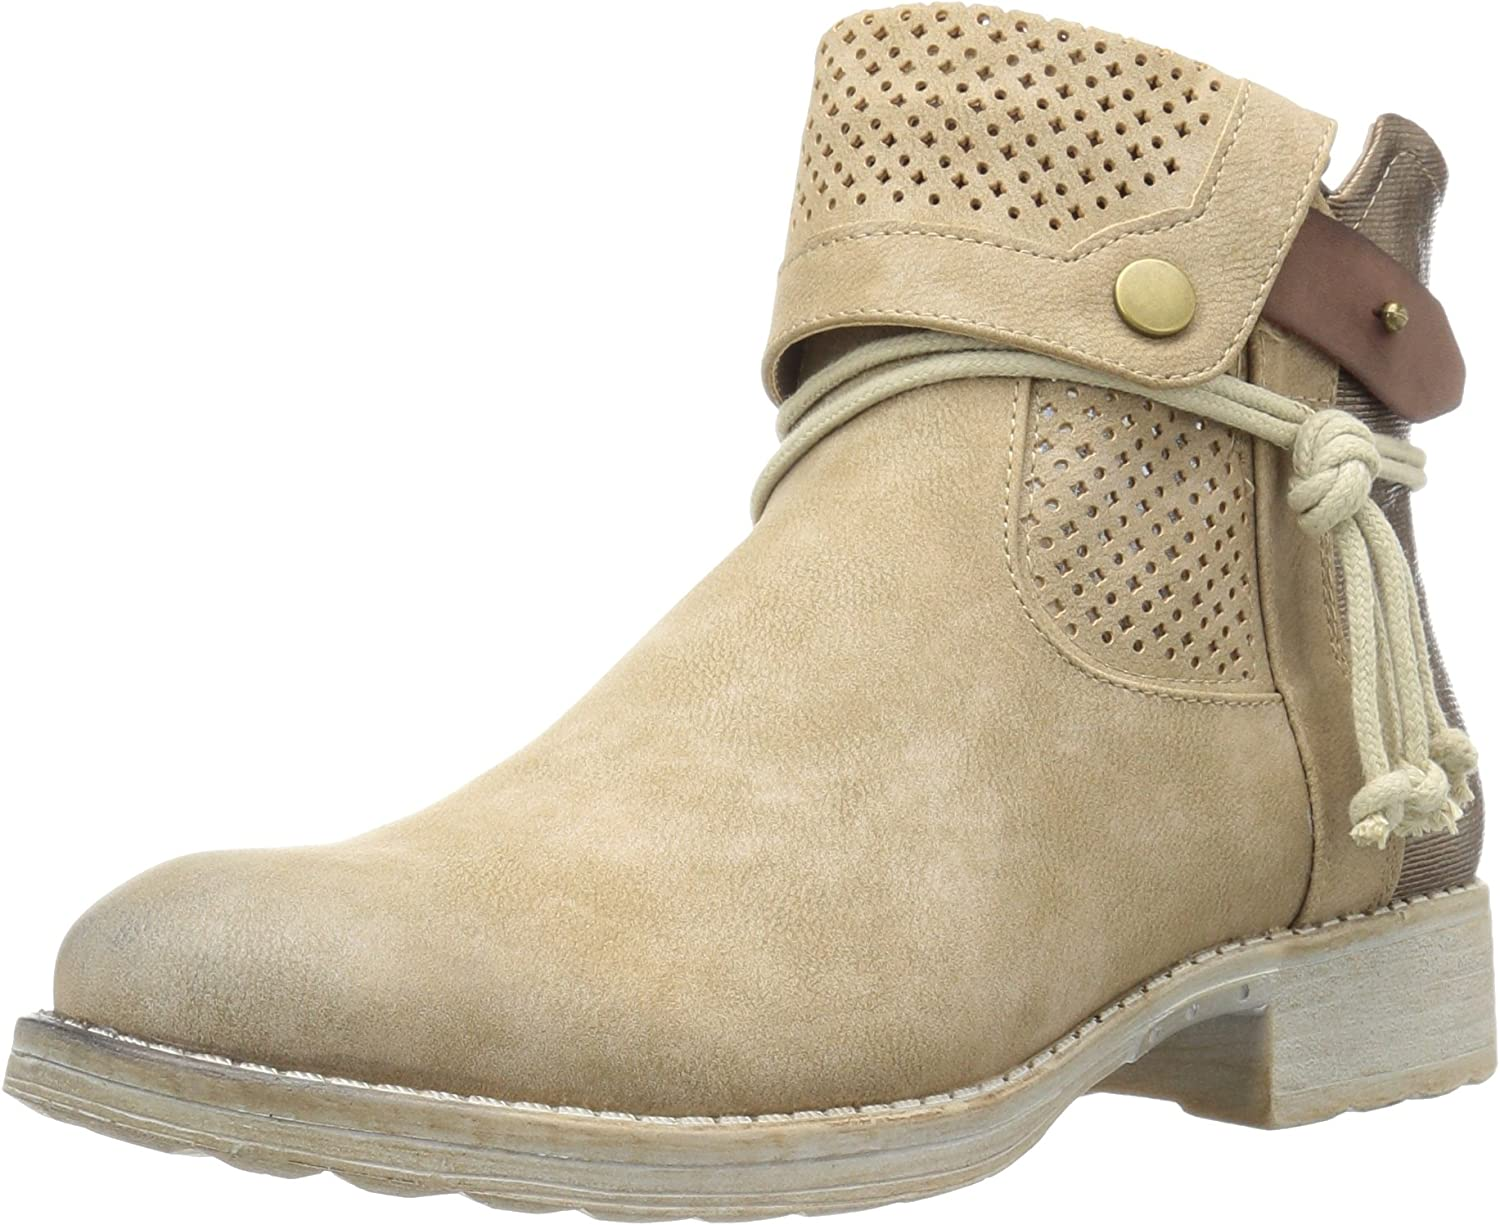 Dirty Laundry by Chinese Laundry Women's Tumbler Ankle Bootie